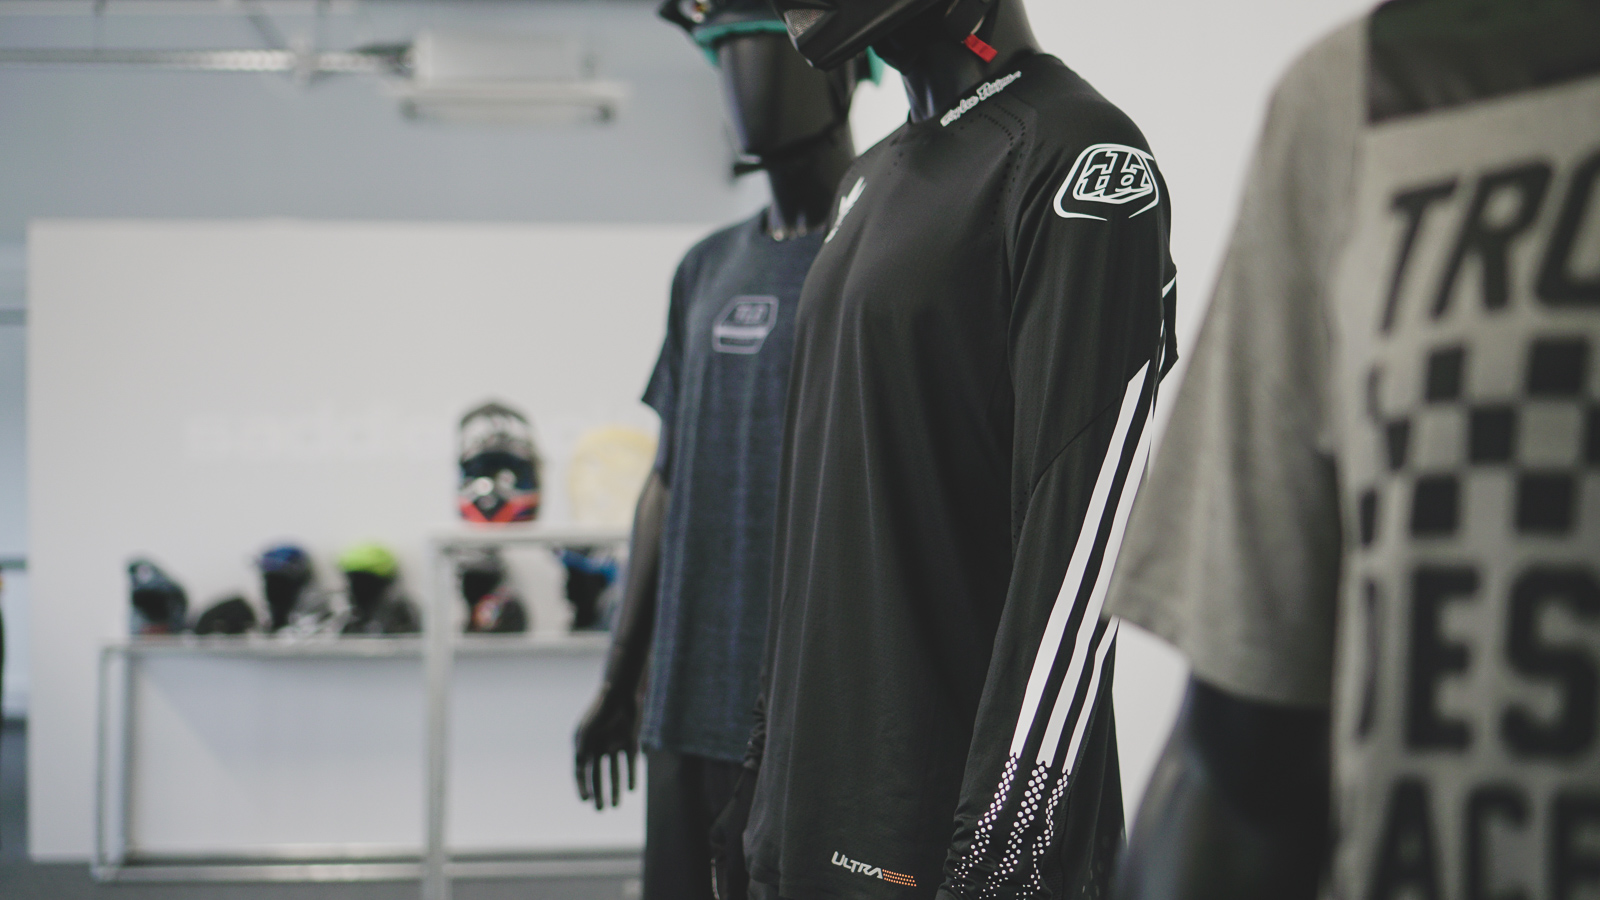 The Troy Lee Designs / Adidas Ultra mountain bike collab is here